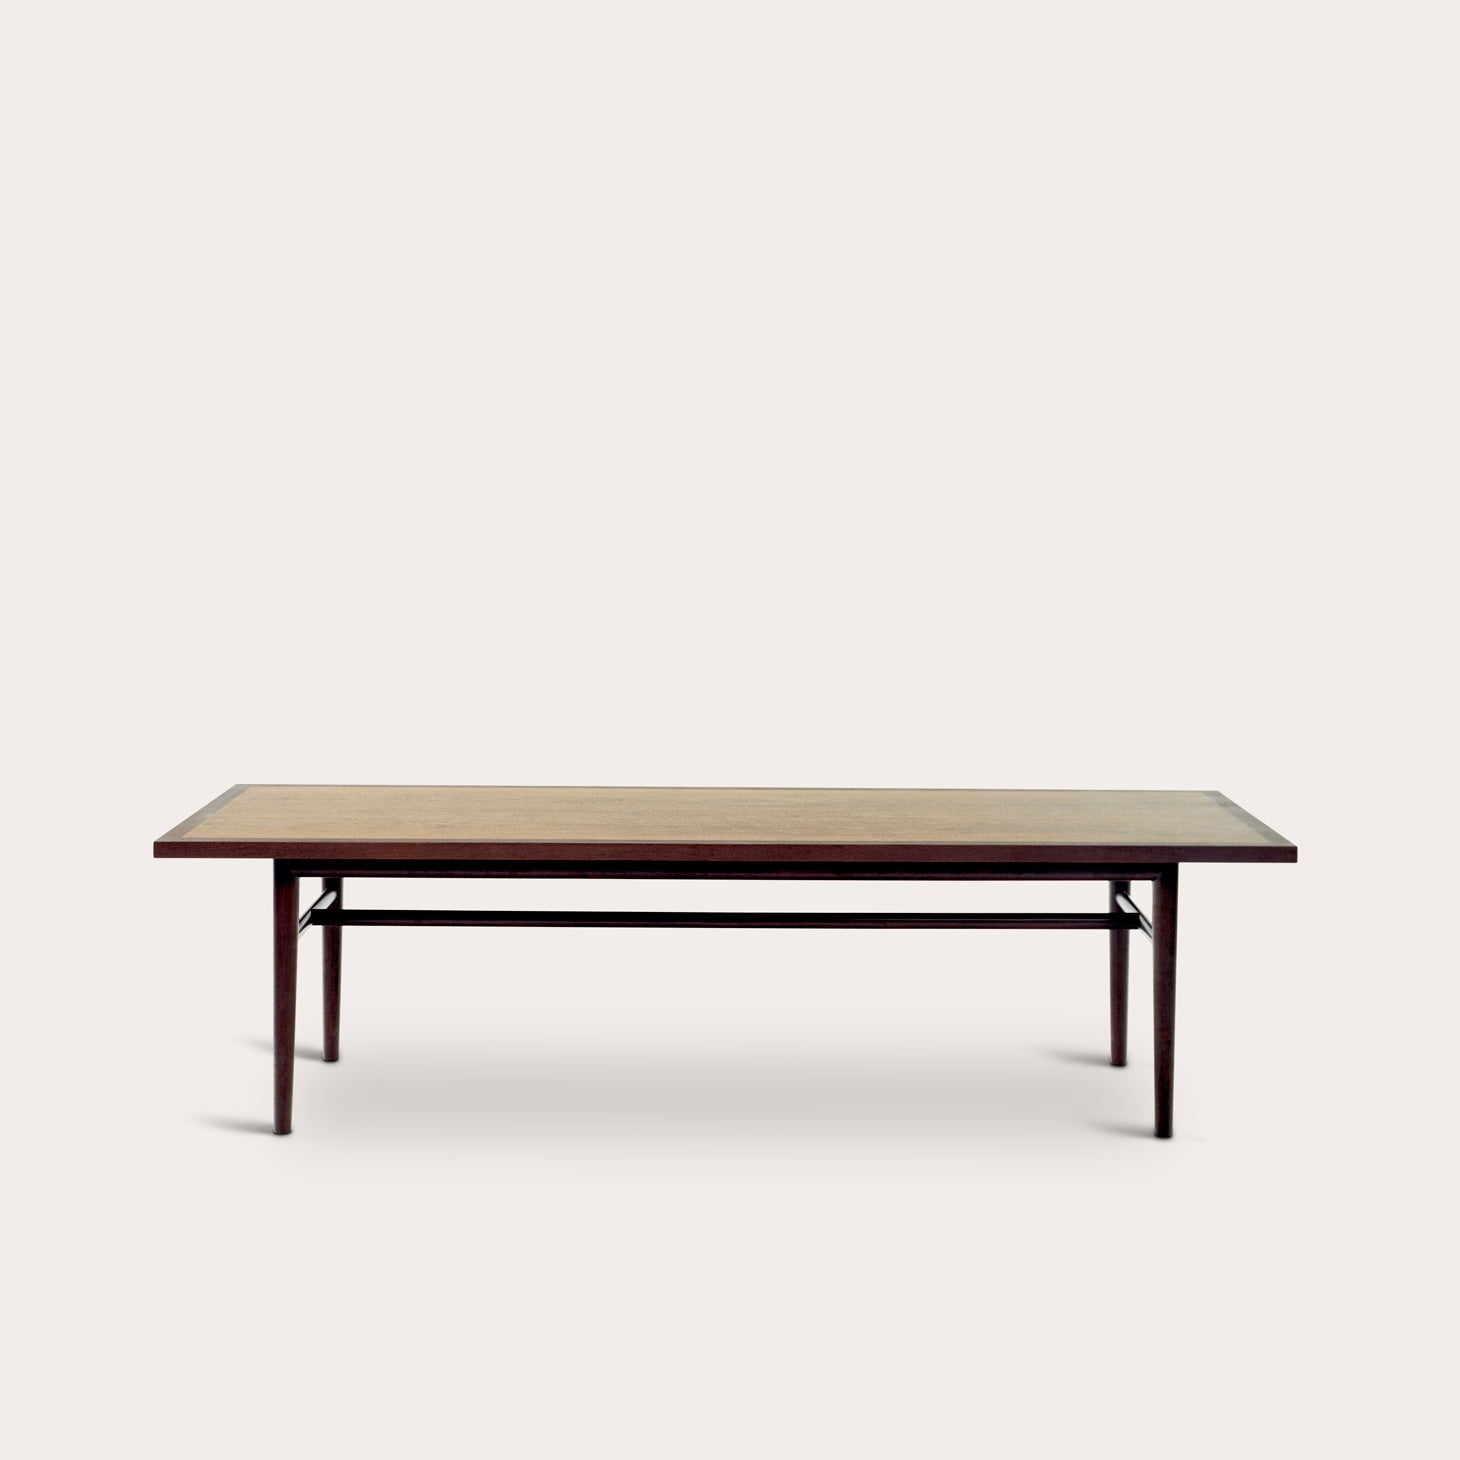 Branco & Preto Dining Table Tables Branco&Preto Designer Furniture Sku: 003-230-10159